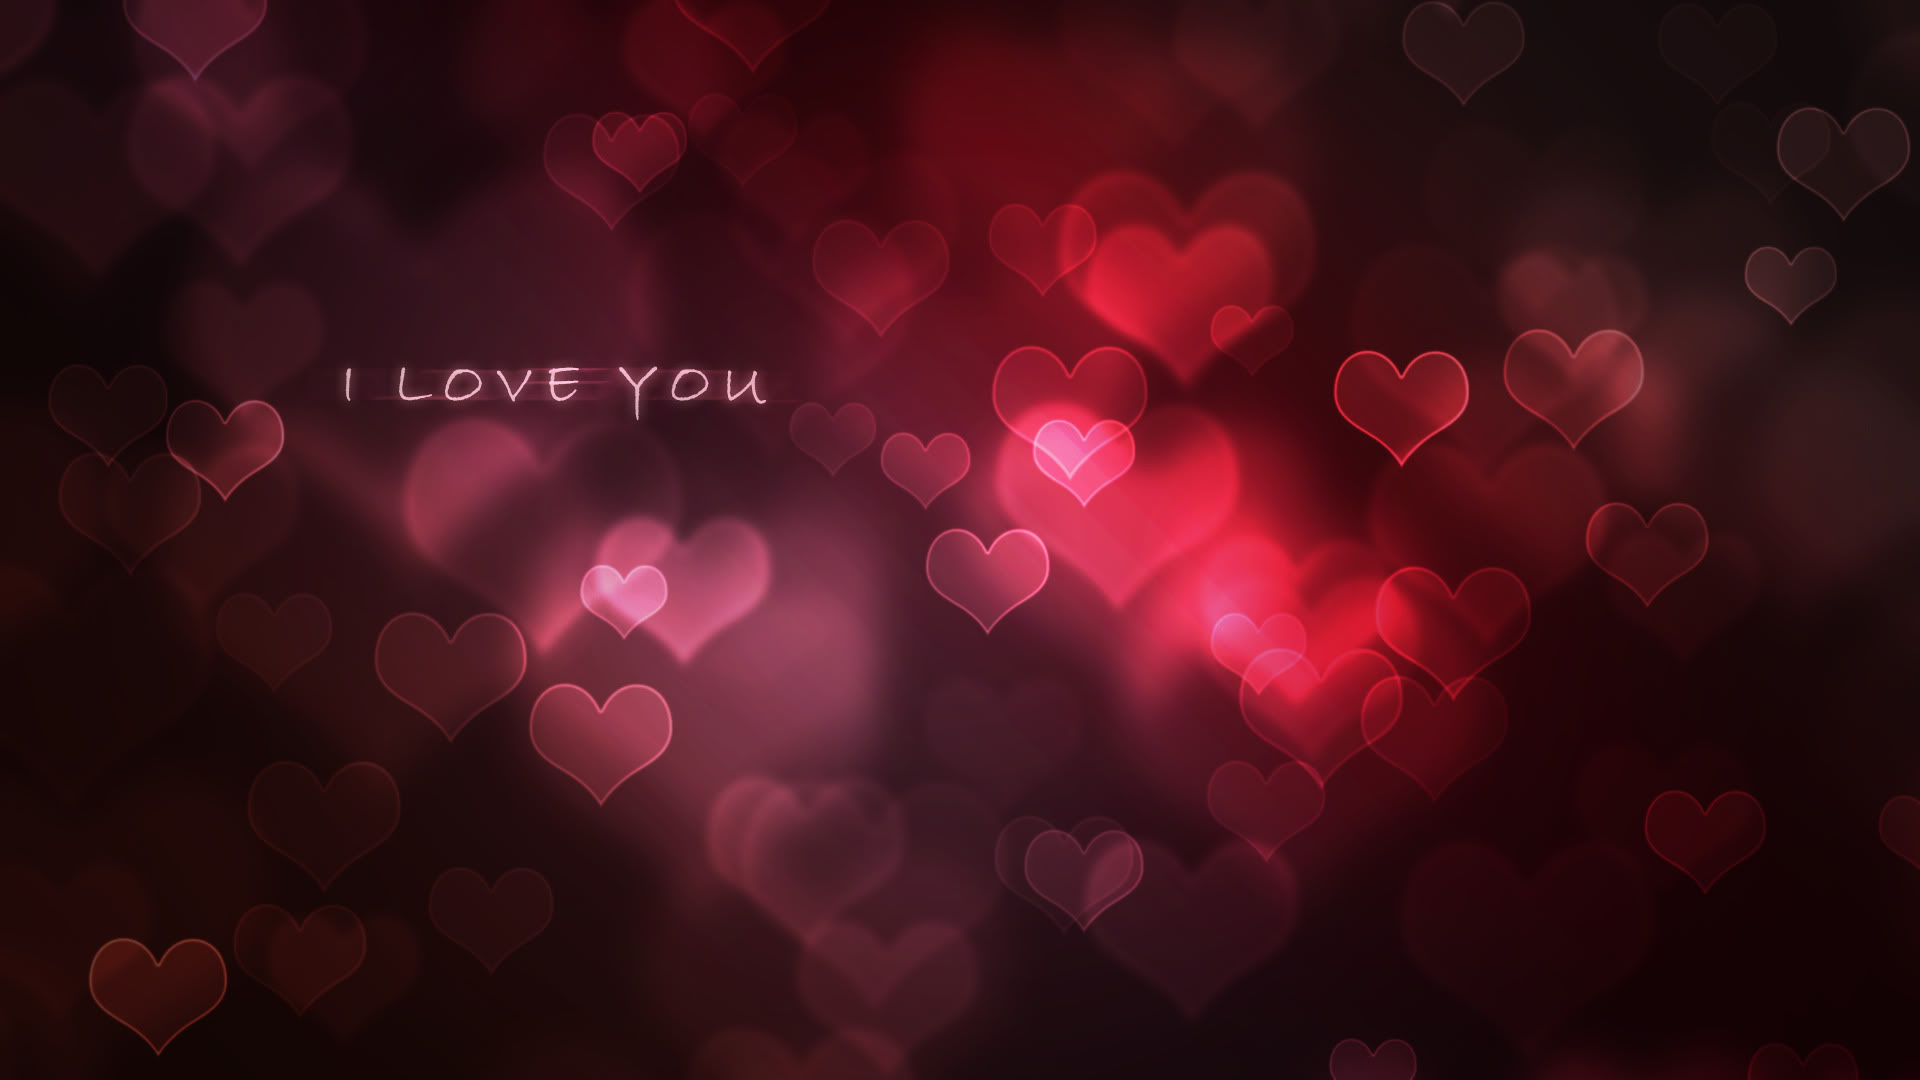 Love Backgrounds Wallpaper 1920x1080 2860